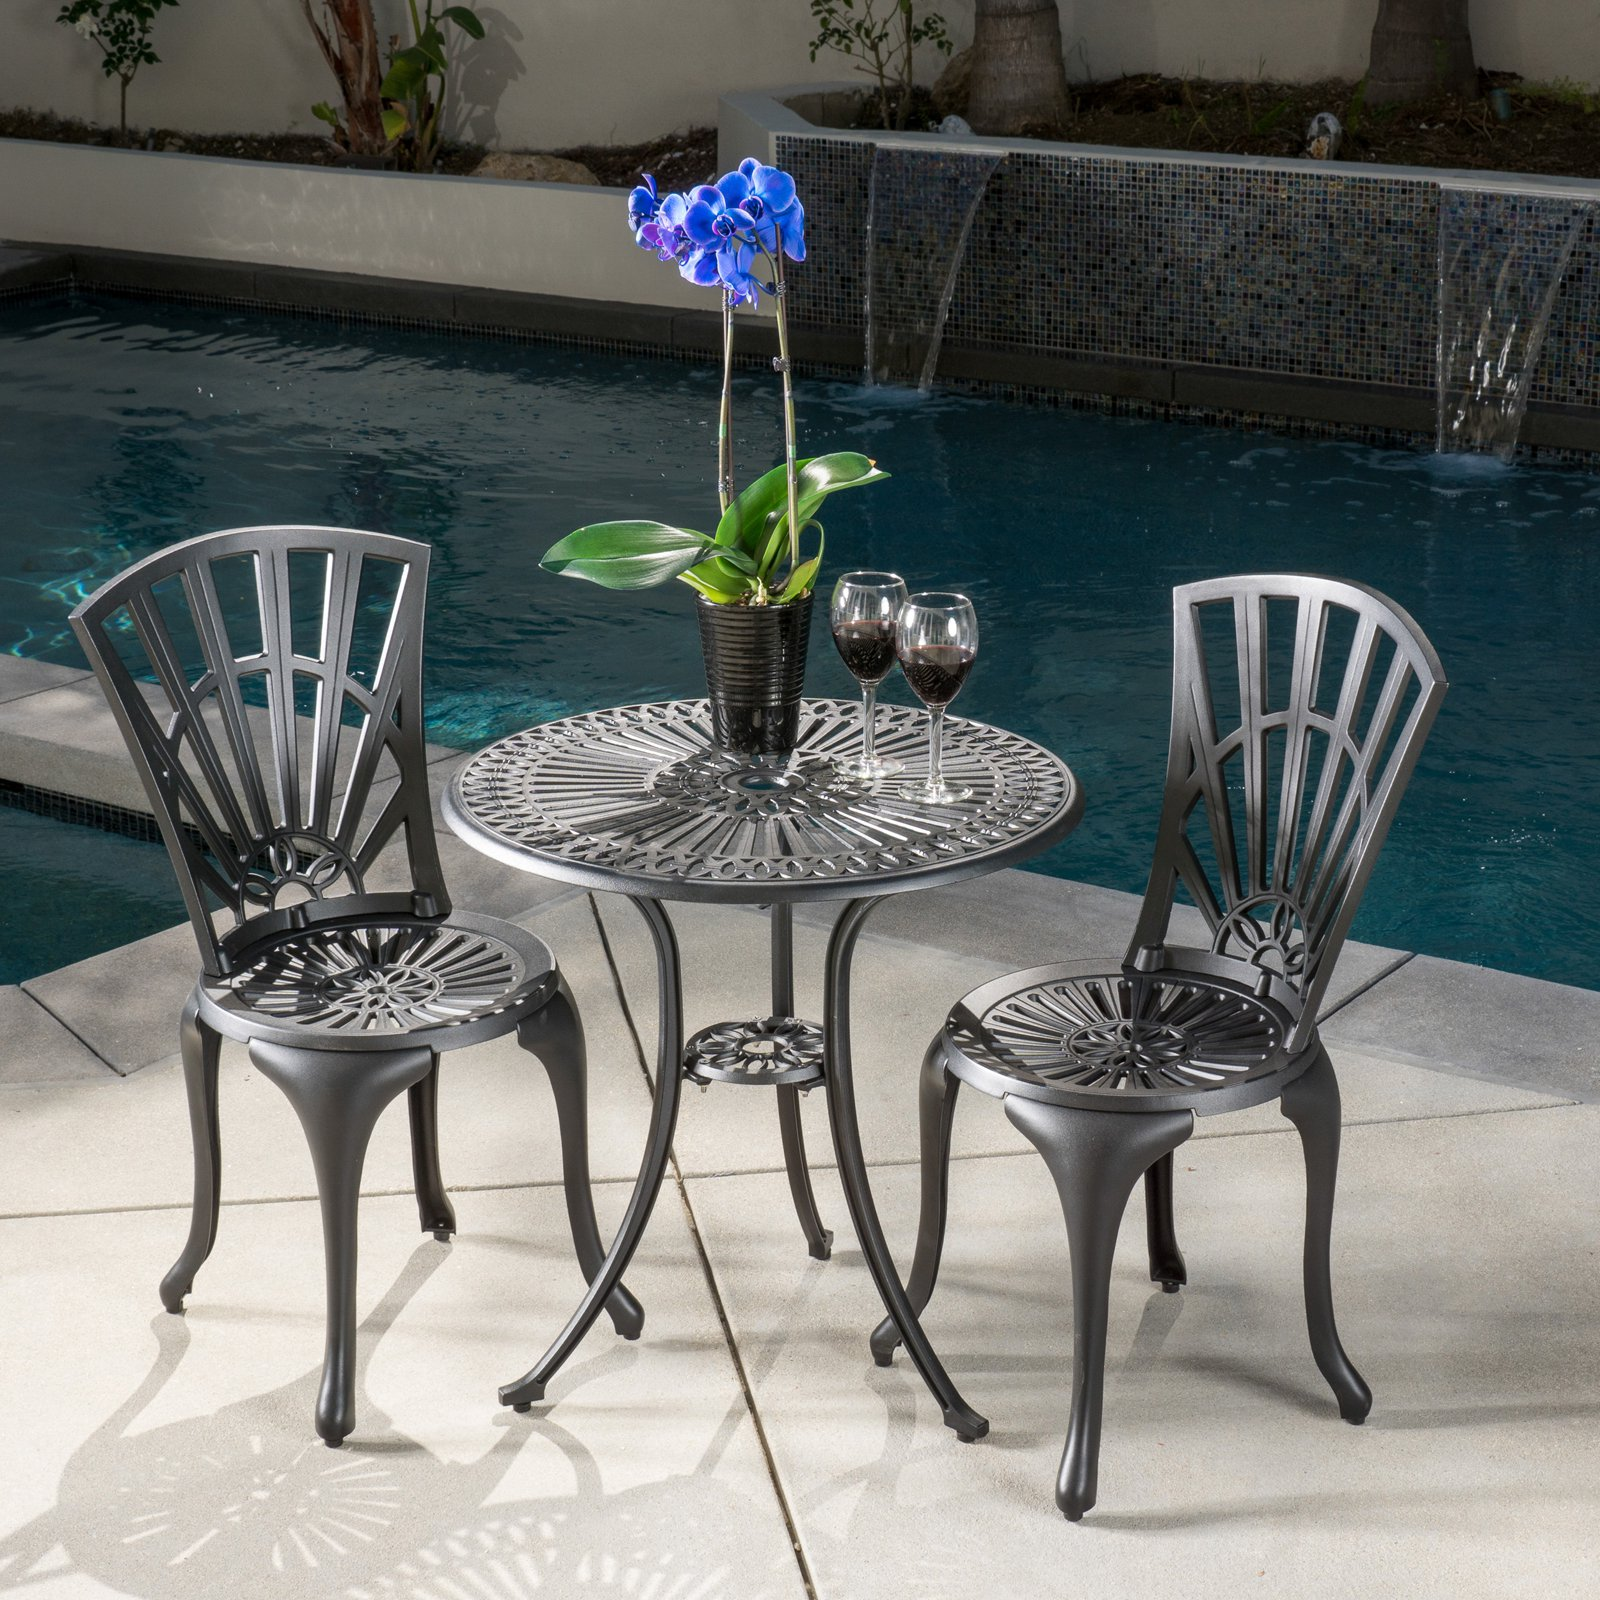 Best Selling Home Decor Andorra Cast Aluminum 3 Piece Patio Bistro Set by Best Selling Home Decor Furniture LLC